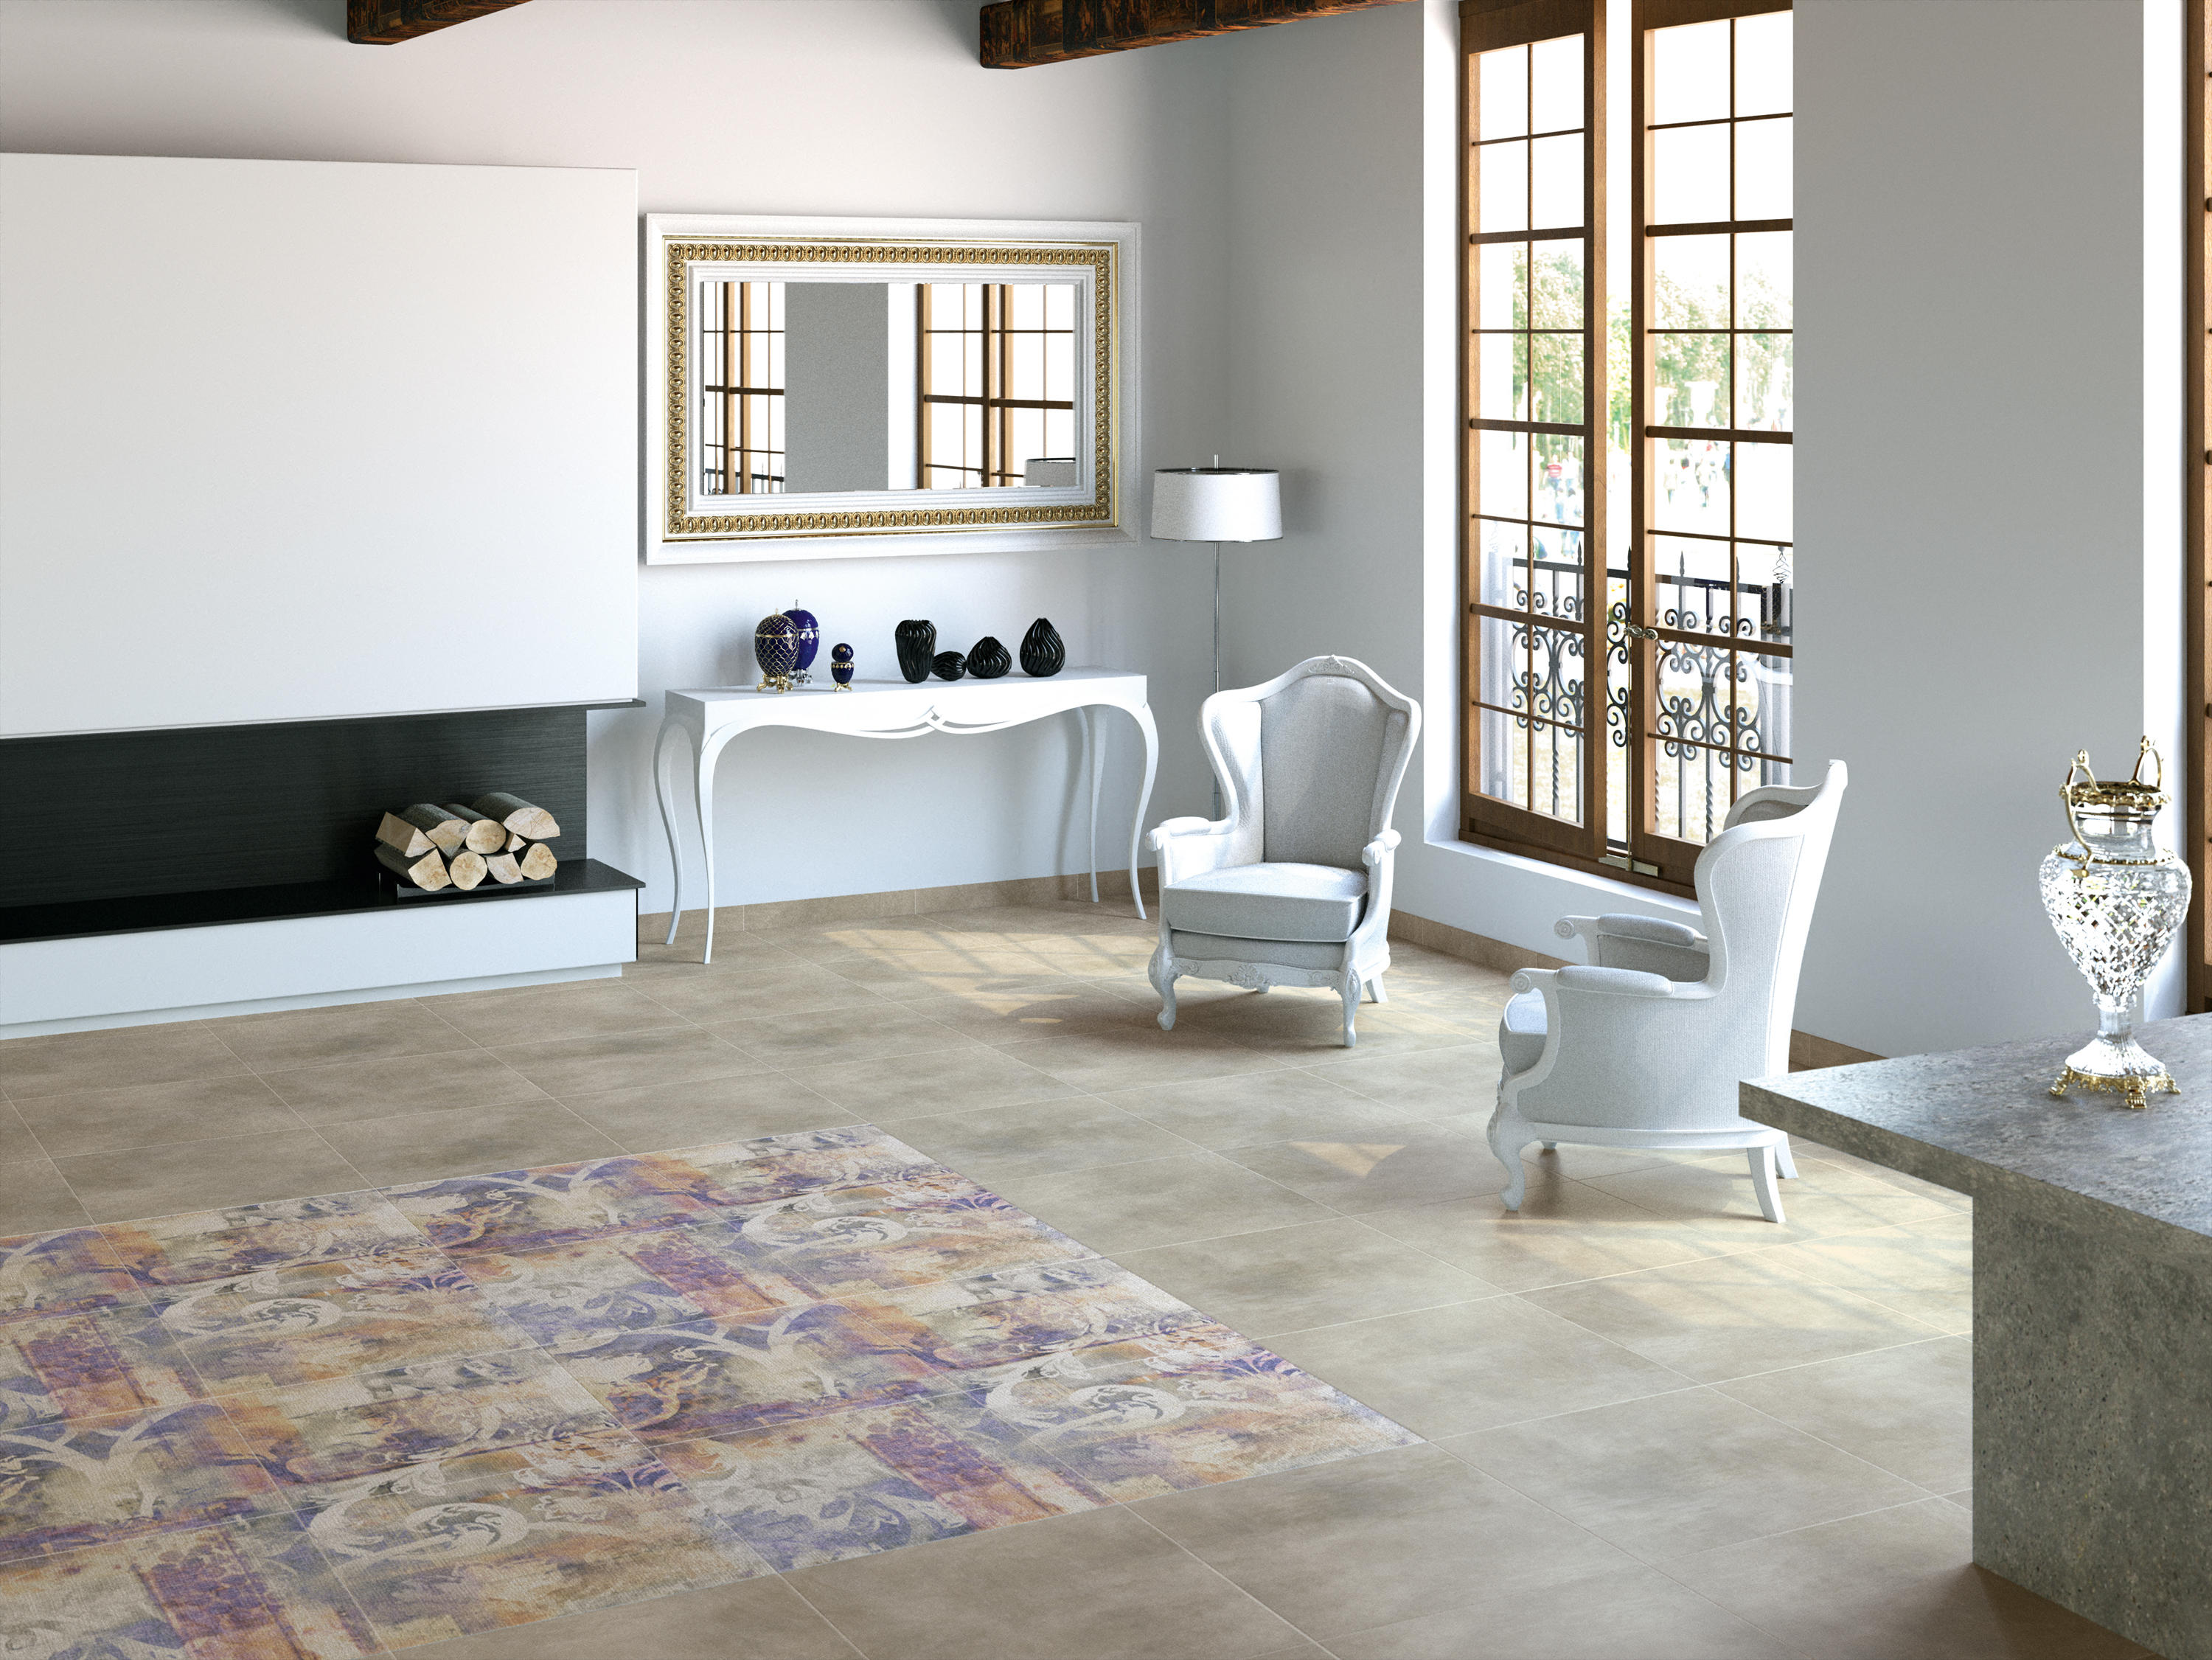 Big apple perla floor tiles from ape grupo architonic dailygadgetfo Images